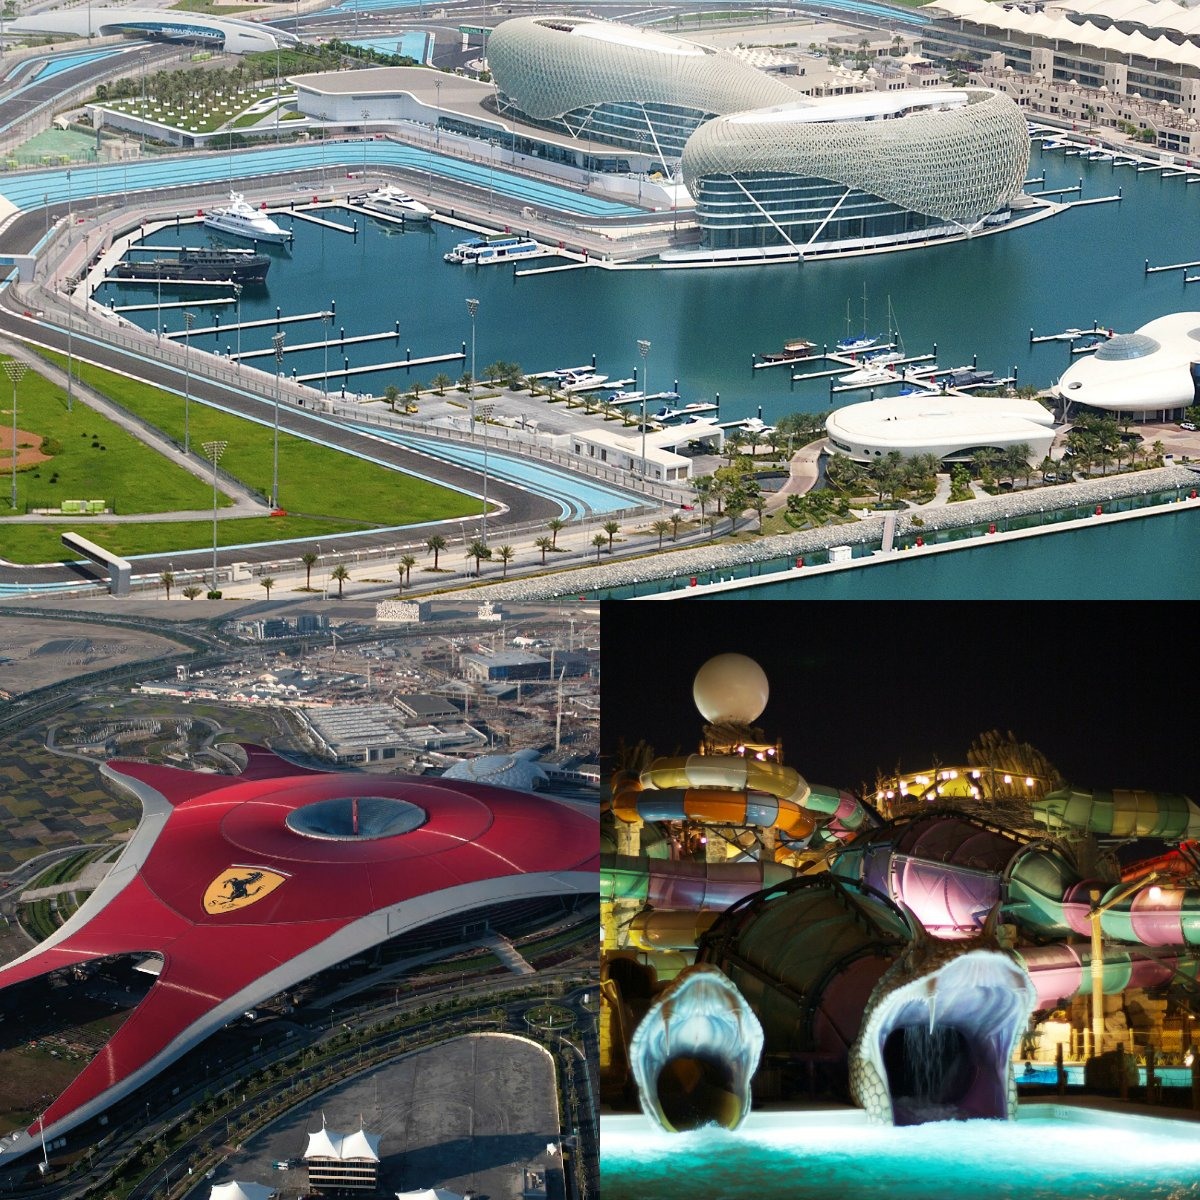 Discover YasIsland, Home to some of the UAE's most exciting attractions: